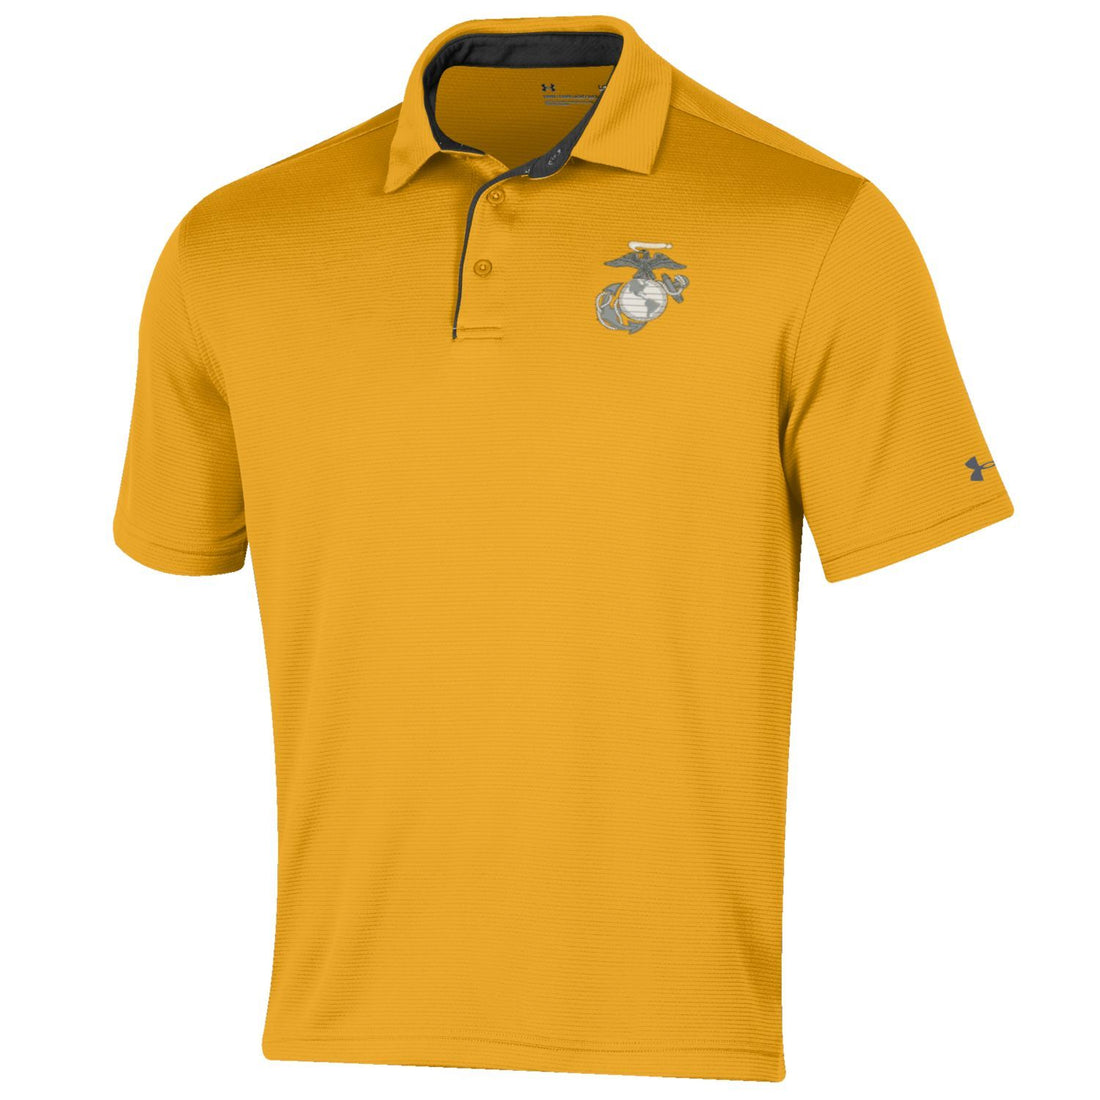 CLOSEOUT Under Armour Marines Tech Polo Gold